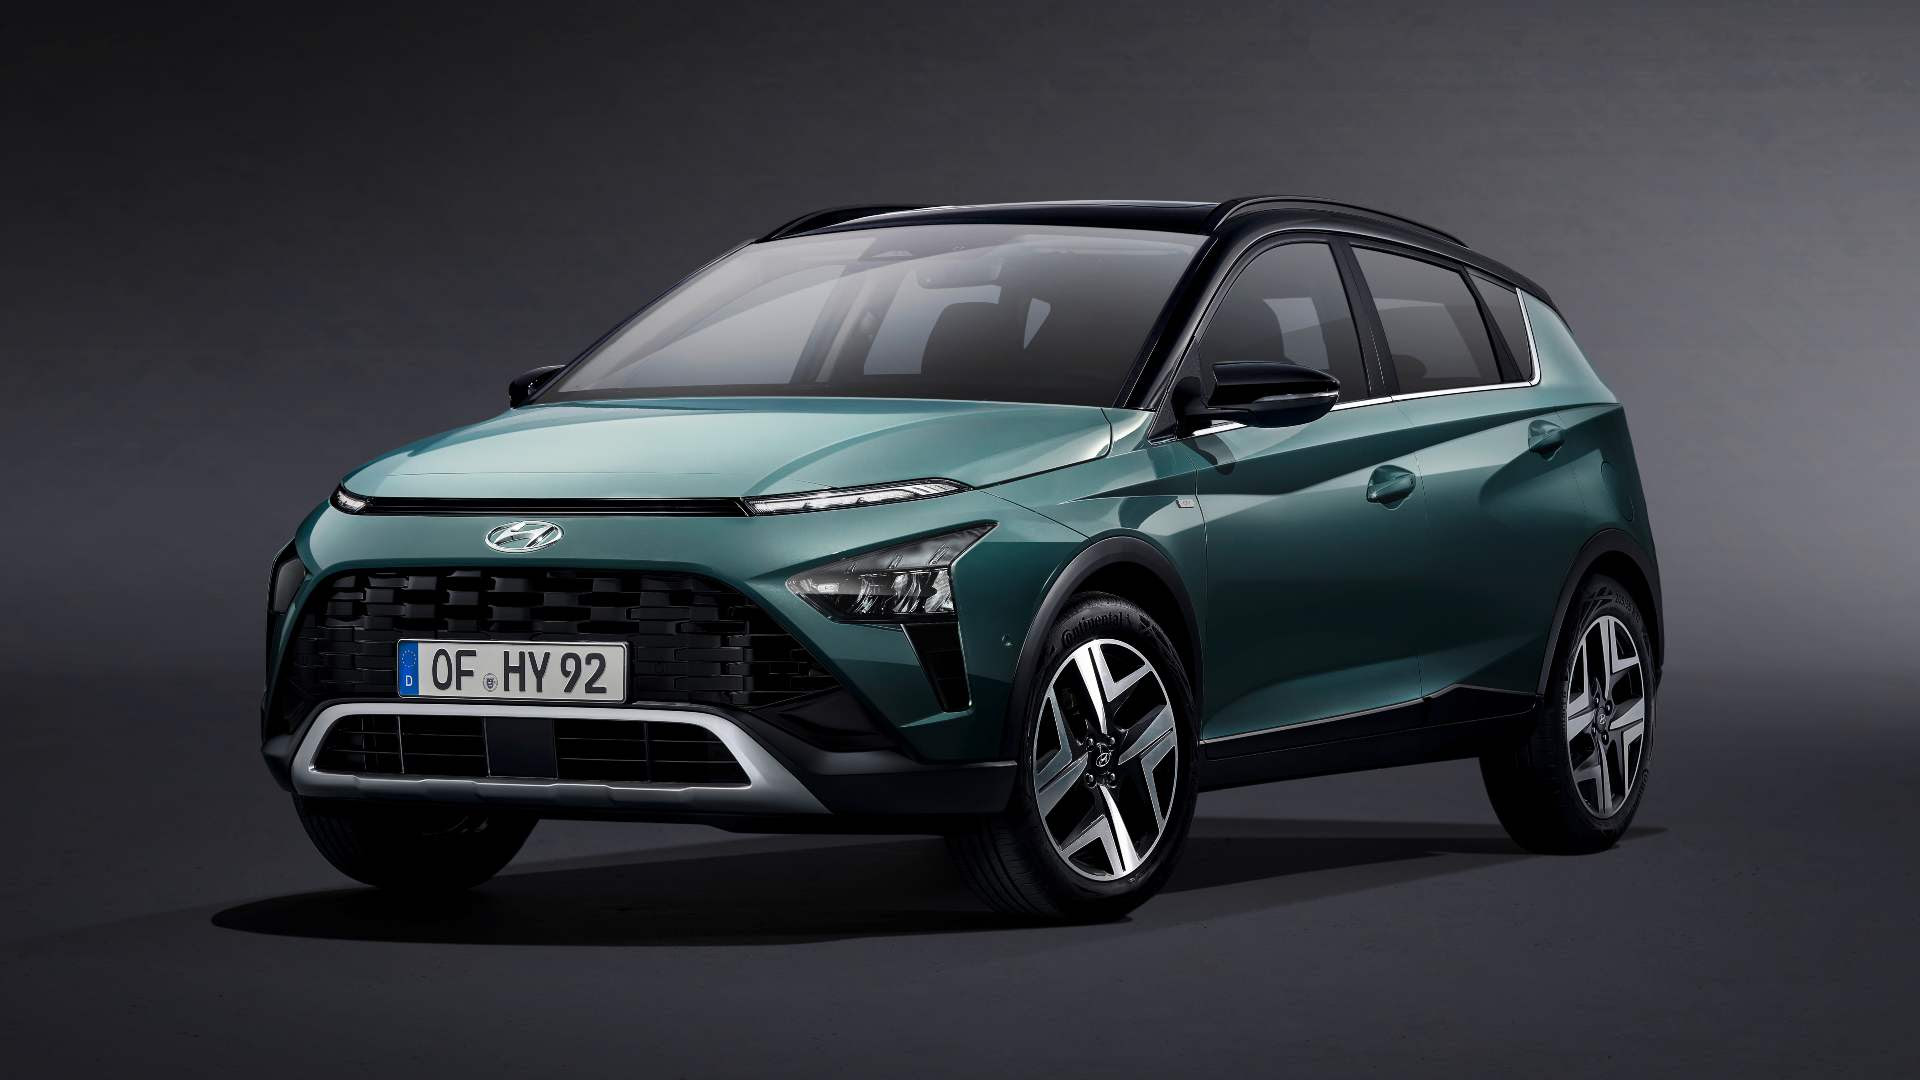 The Bayon is the smallest crossover in Hyundai's Europe lineup. Image: Hyundai